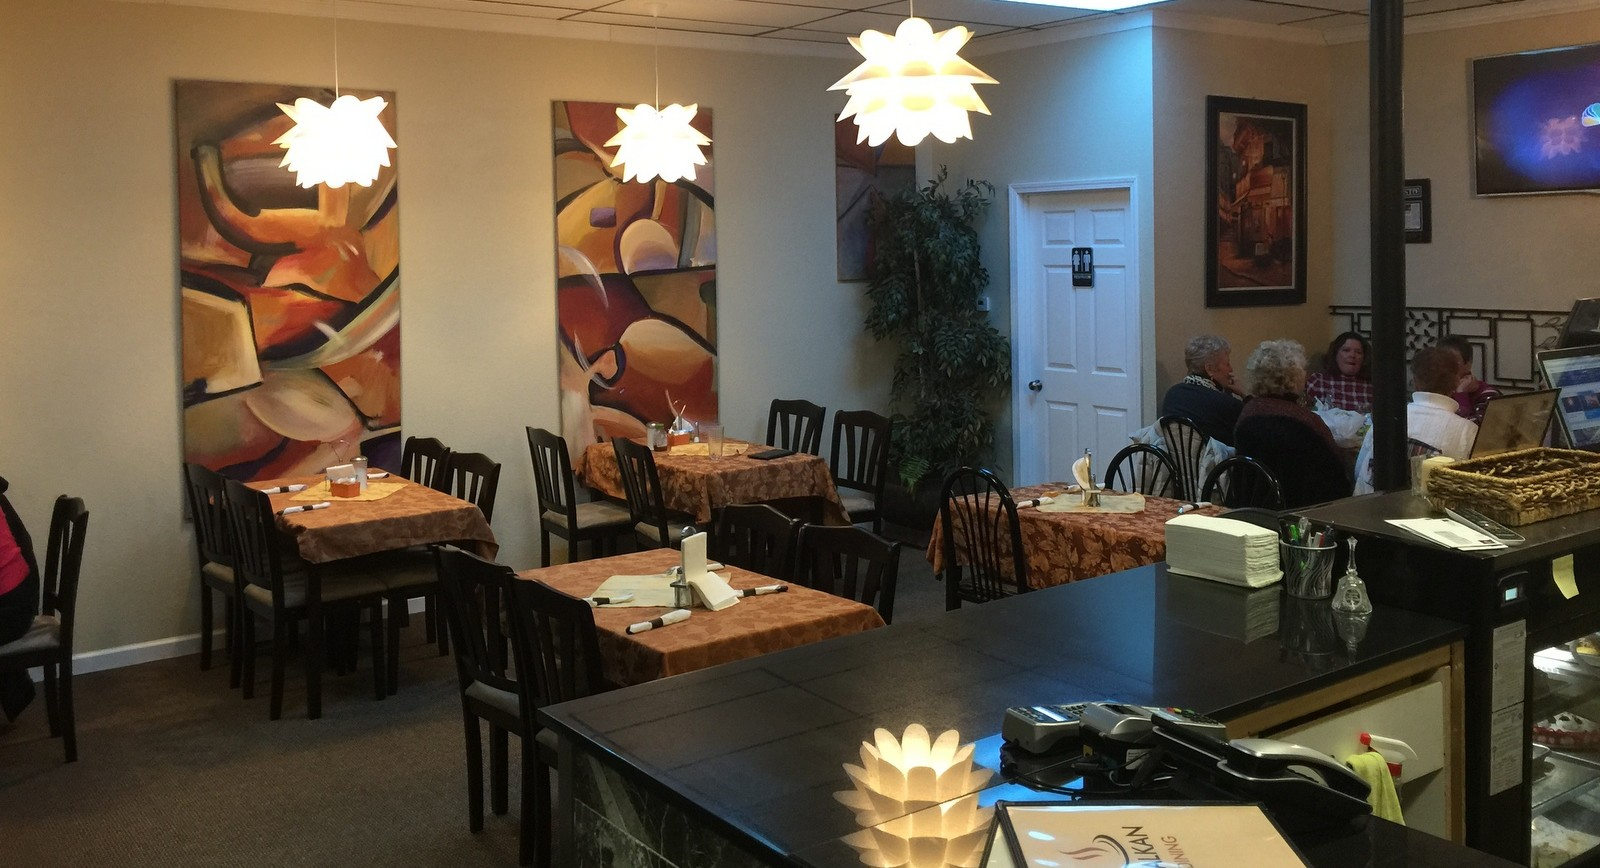 Balkan Dining's renovation has added two tables, and a bathroom. (Andrew Galarneau/Buffalo News)